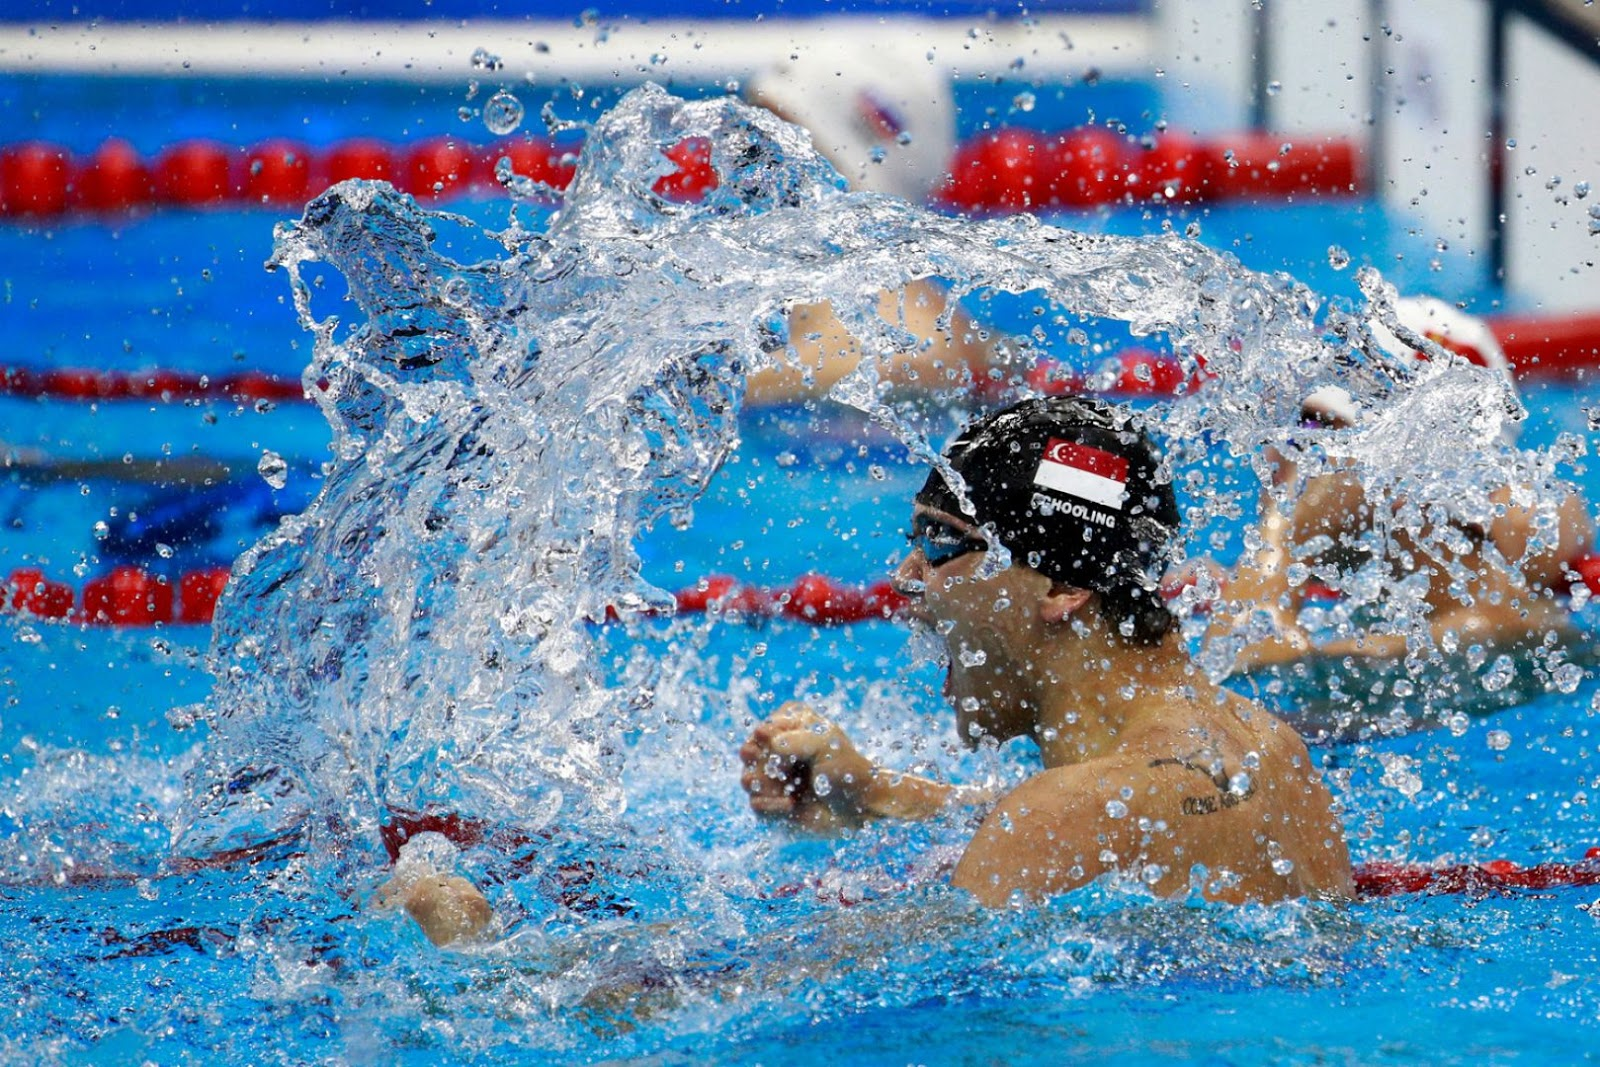 Joseph Isaac Schooling celebrates winning gold in the Men's 100m Butterfly Final on Day 7 of the Rio 2016 Olympic Games at the Olympic Aquatics Stadium on 12 August 2016.